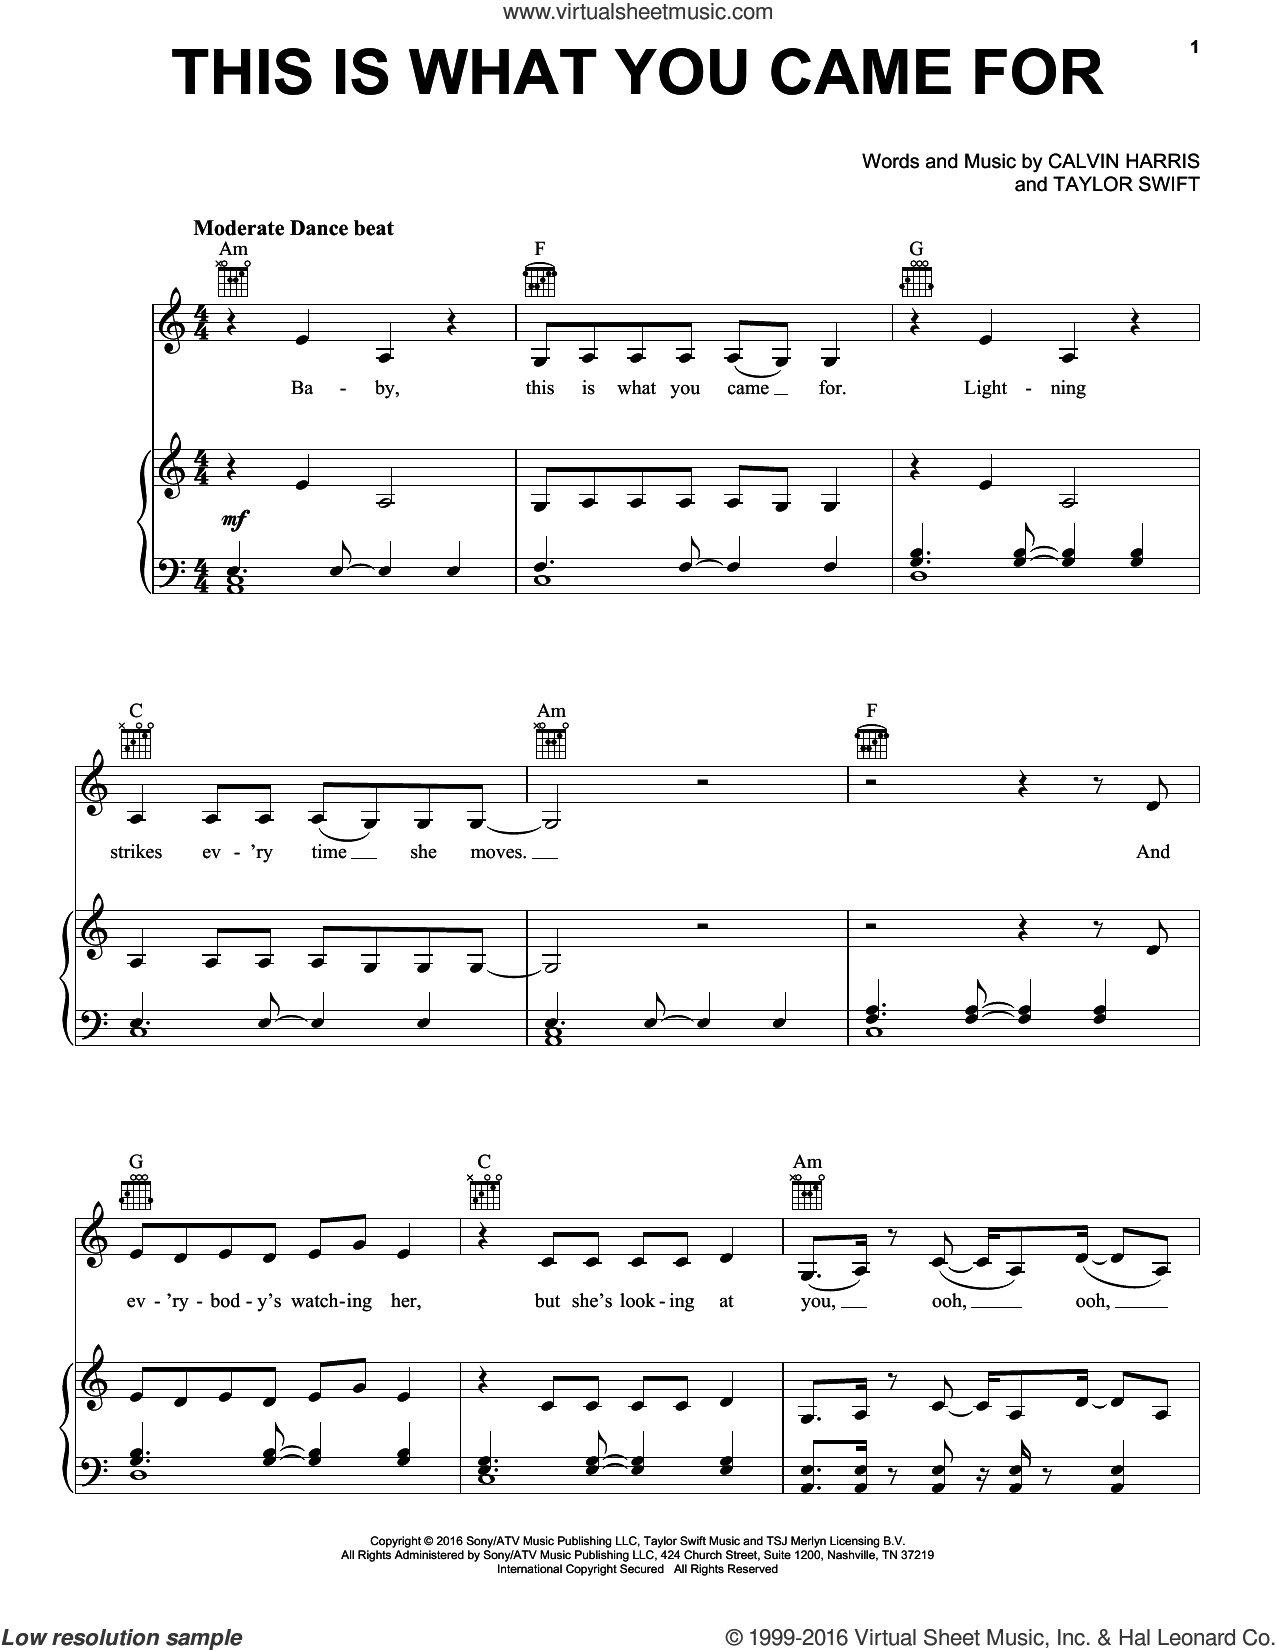 This Is What You Came For sheet music for voice, piano or guitar by Calvin Harris featuring Rihanna, Calvin Harris and Nils Sjoberg, intermediate